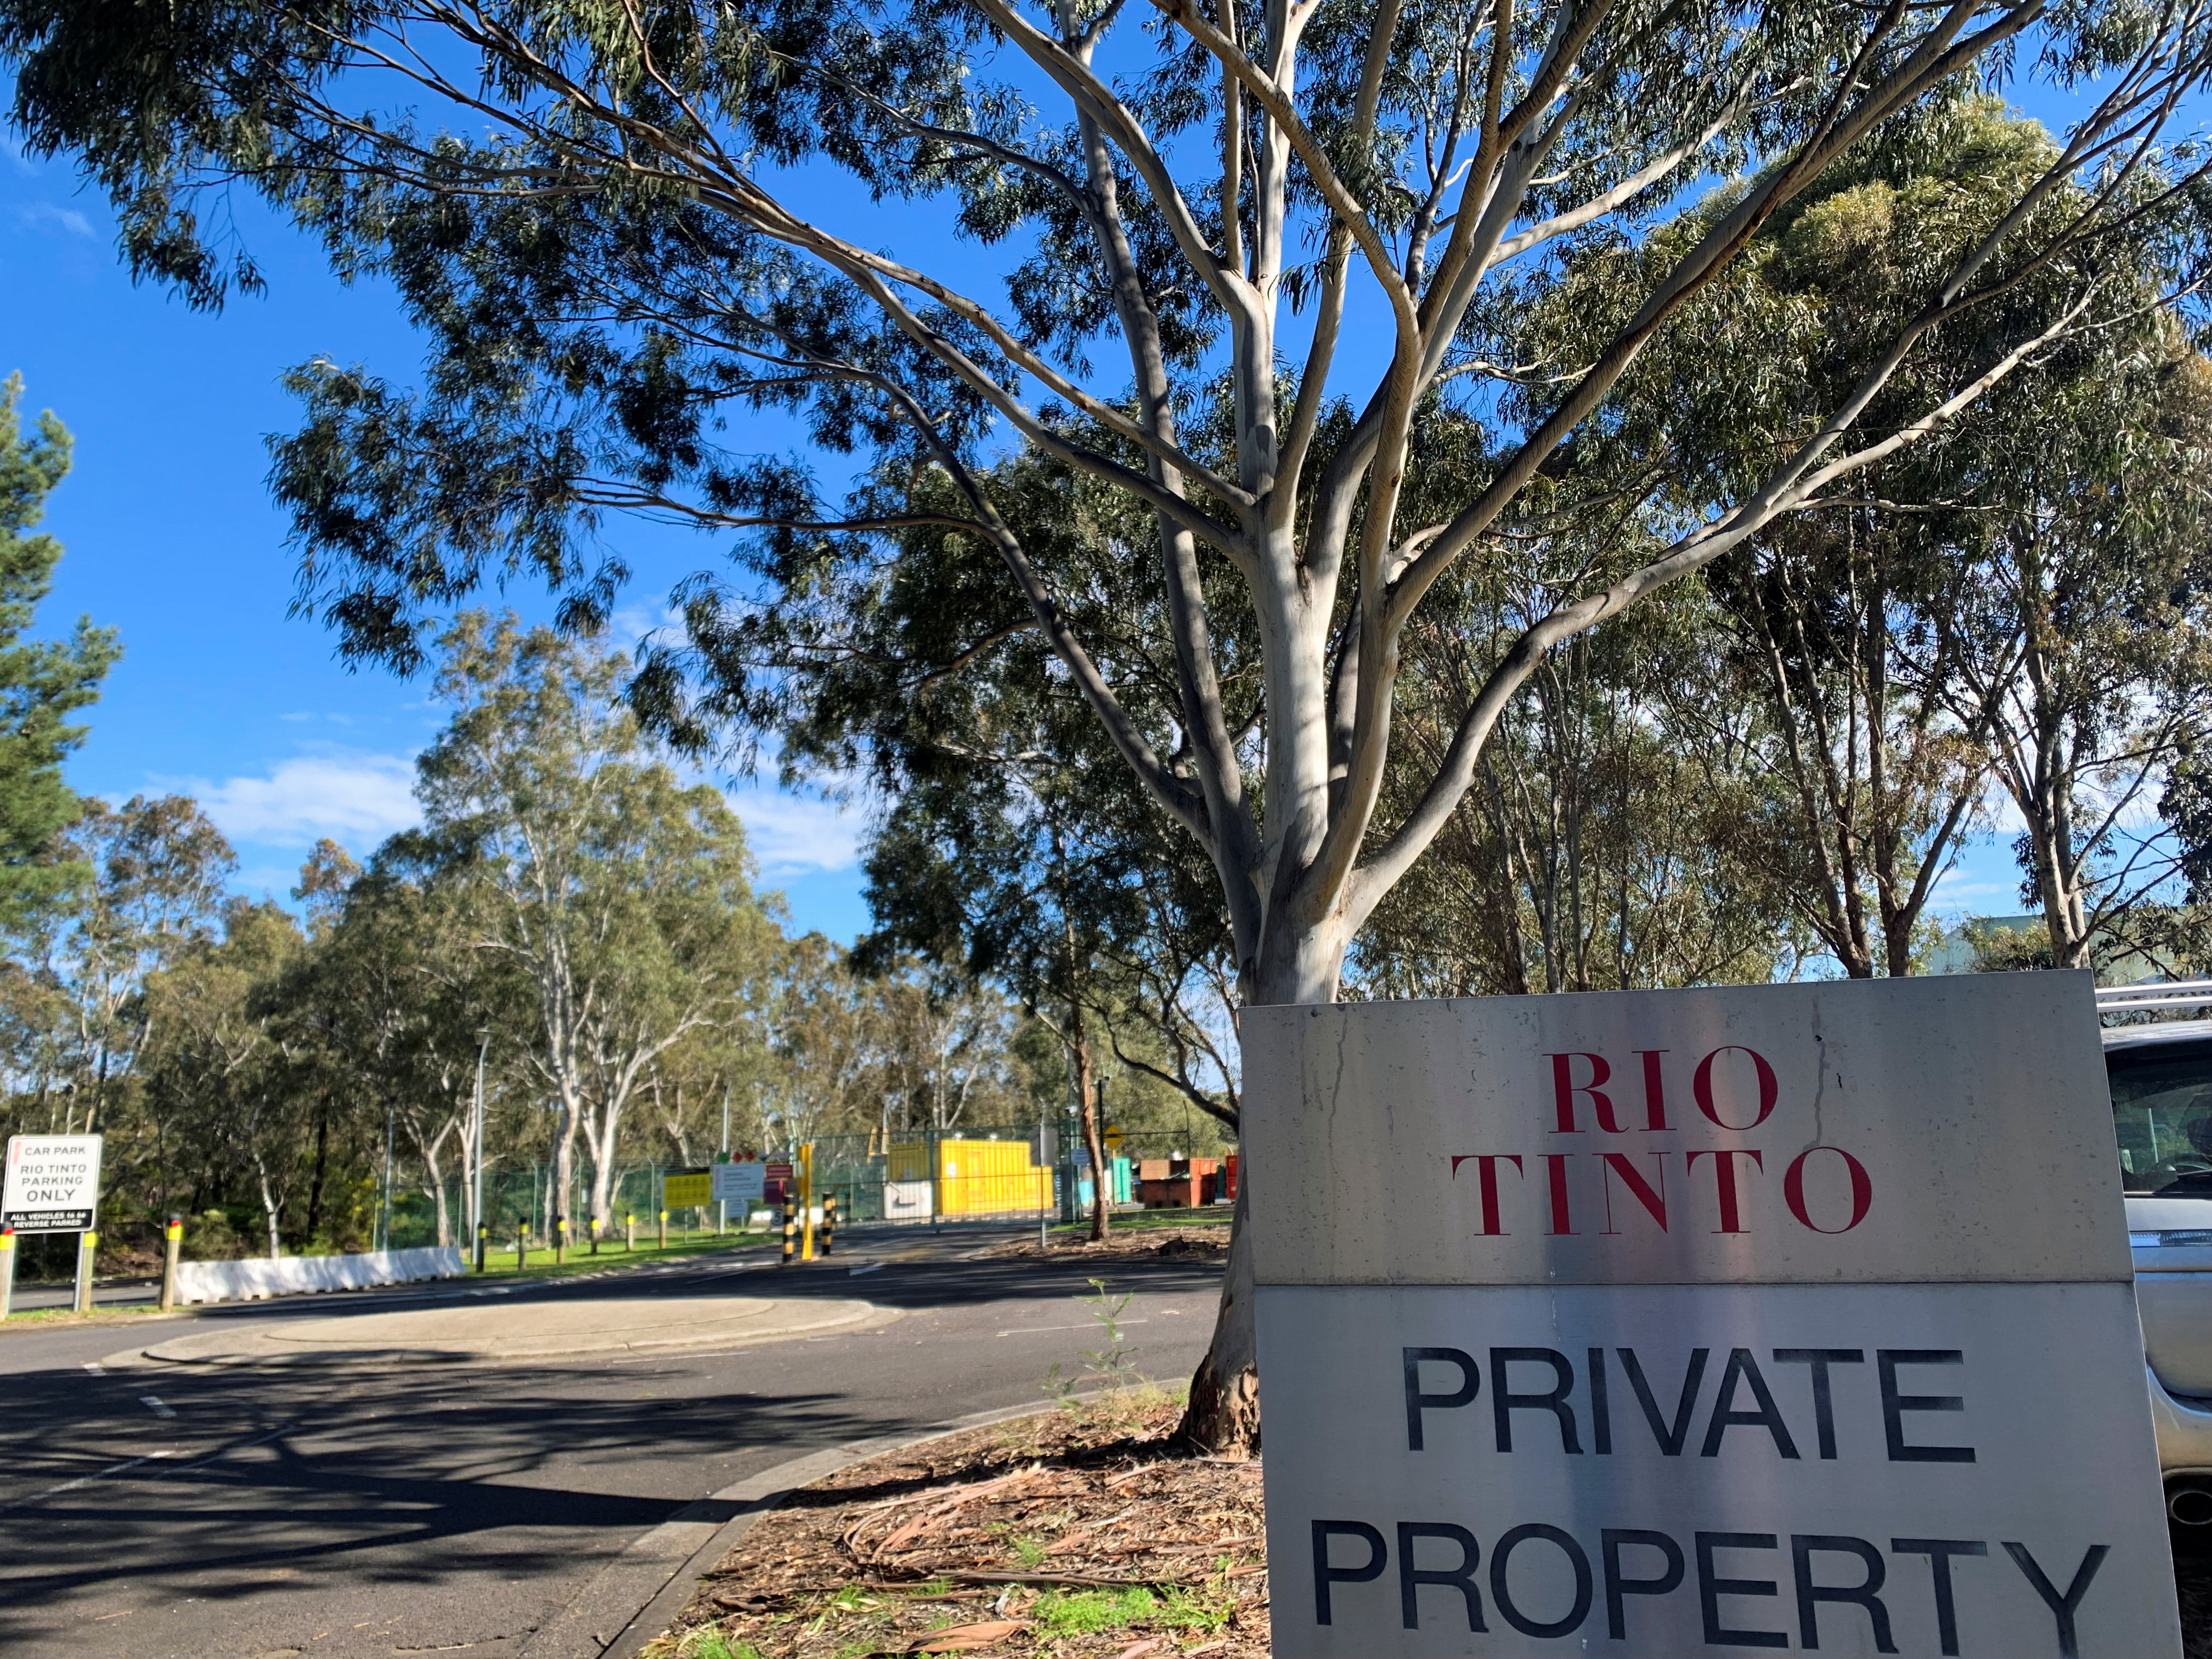 A sign heralds the entrance way to Rio Tinto's research and development hub in Bundoora on the outskirts of Melbourne, Australia July 30, 2021. REUTERS/Melanie Burton